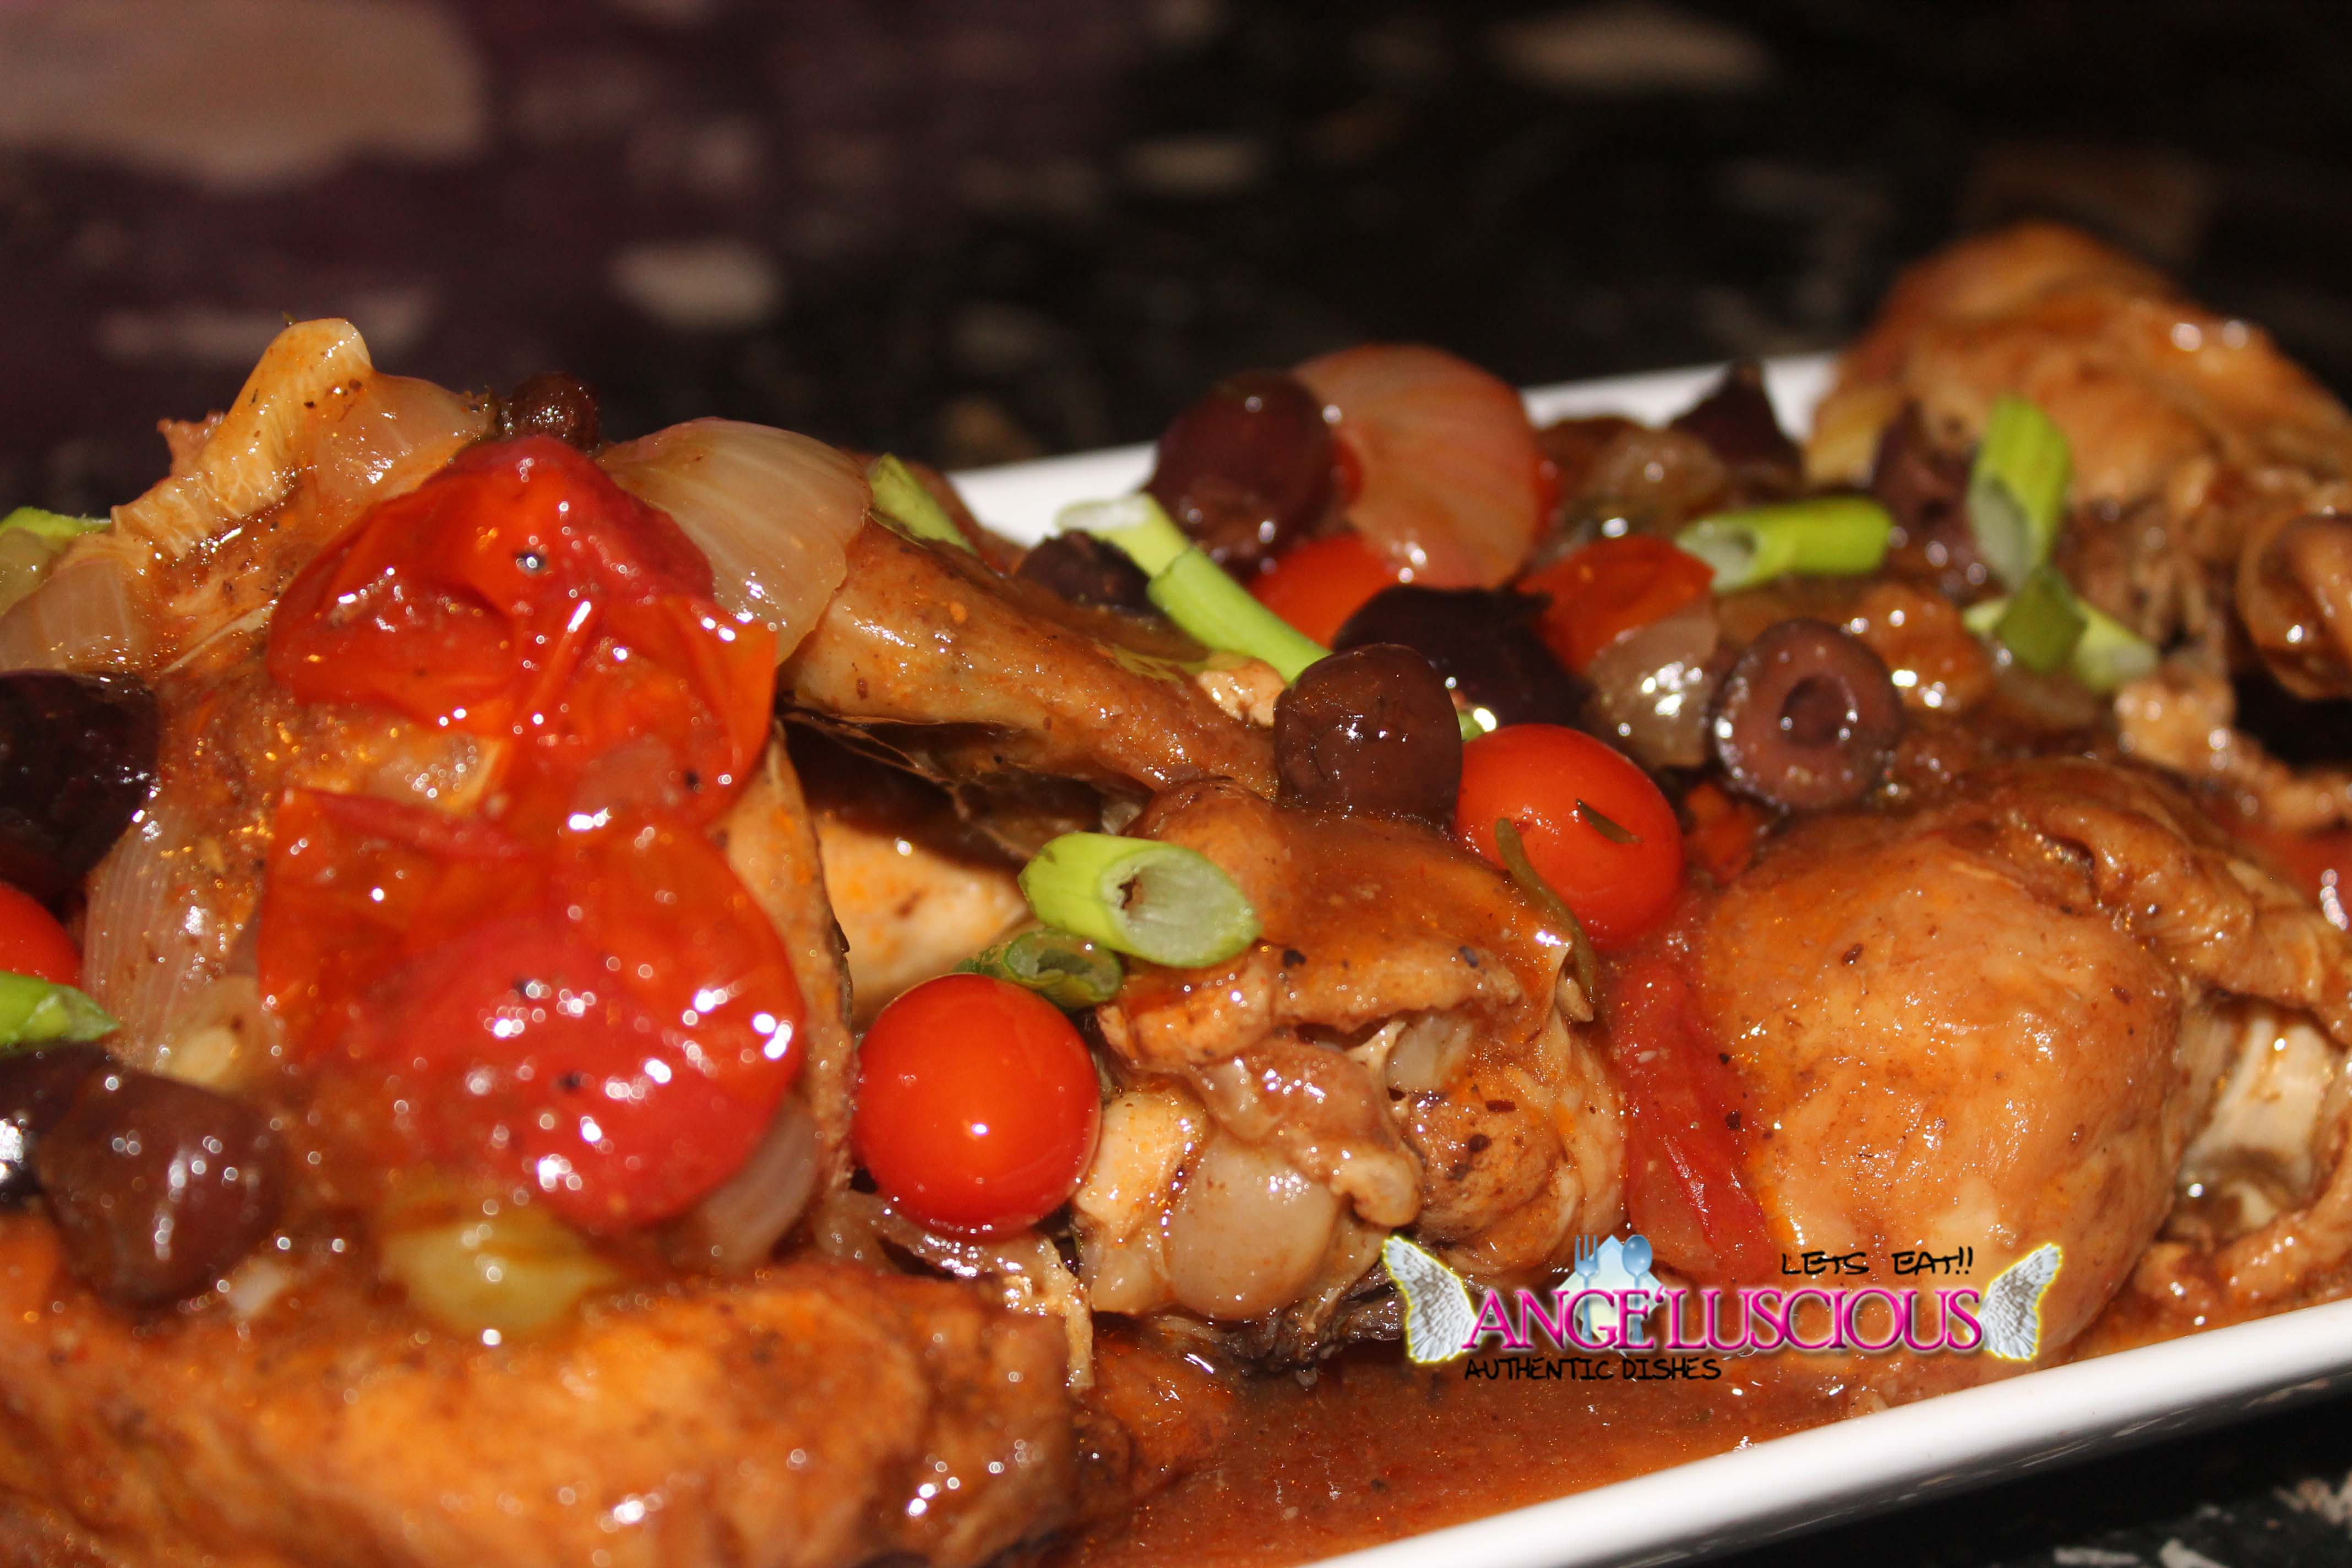 Stewed Chicken with Kalamata Olives and Tomatoes - Angeluscious